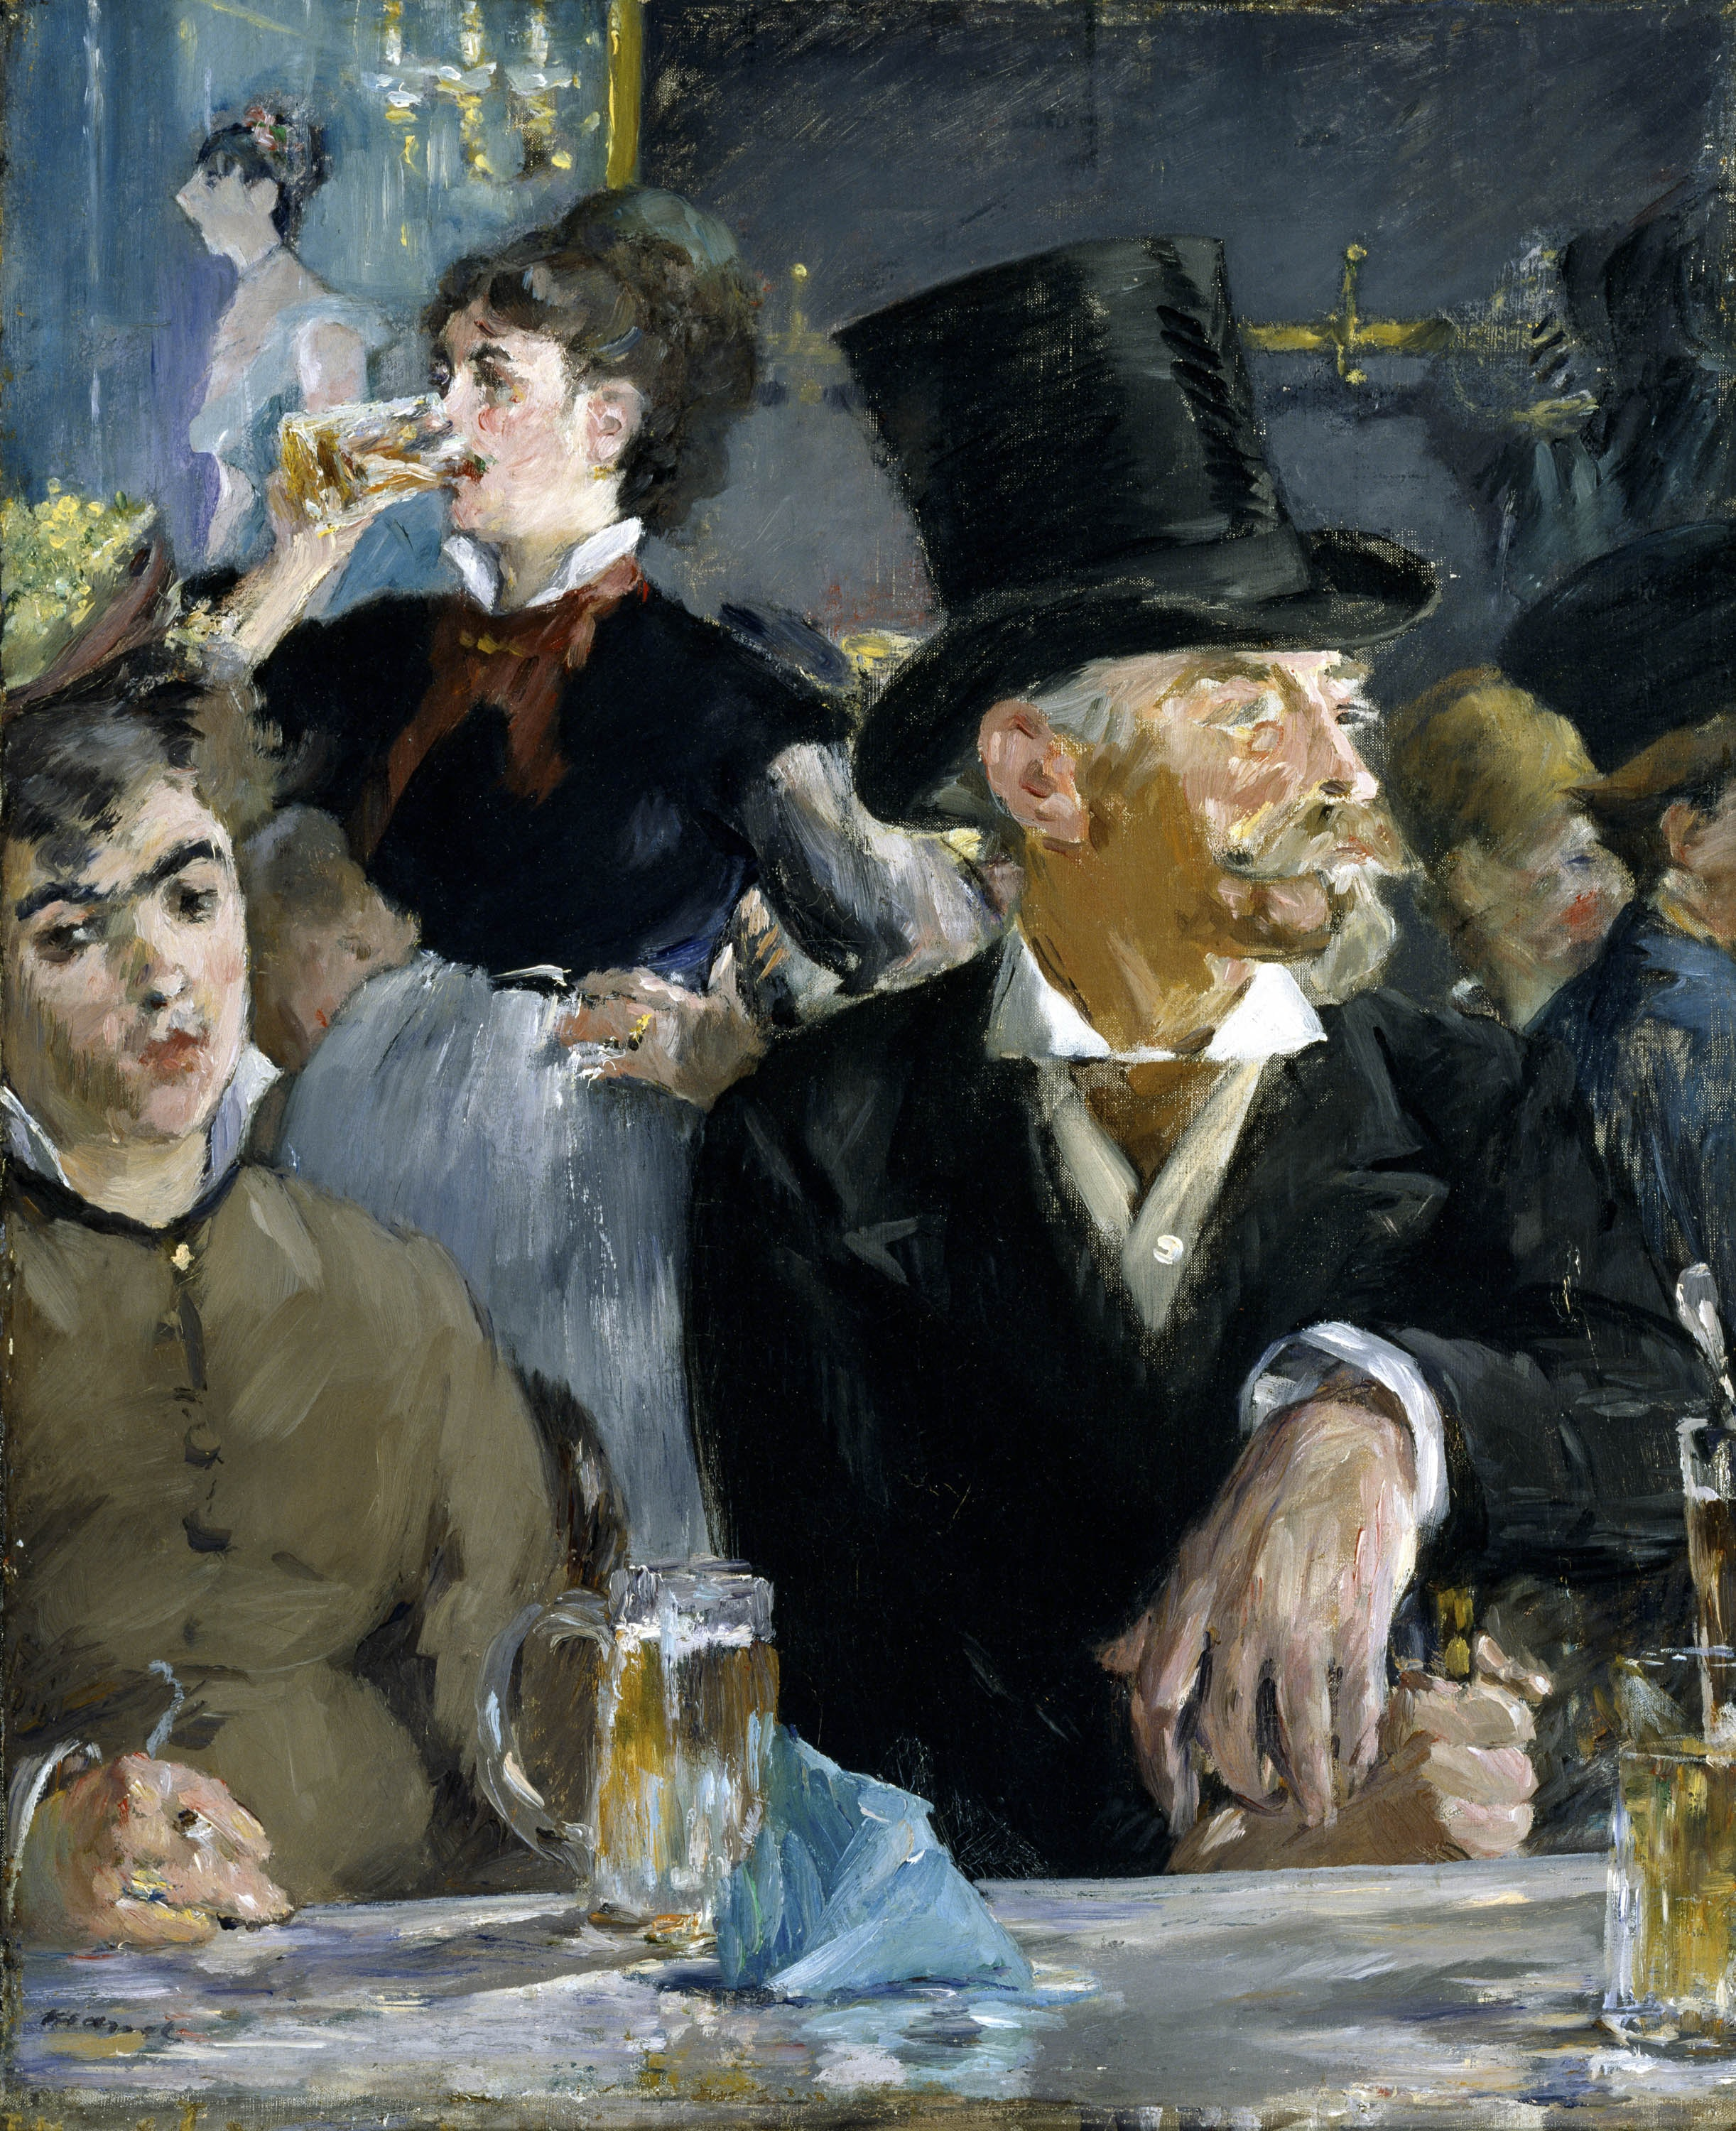 A painting shows patrons in a late 19th-century café looking about but not engaging with each other.